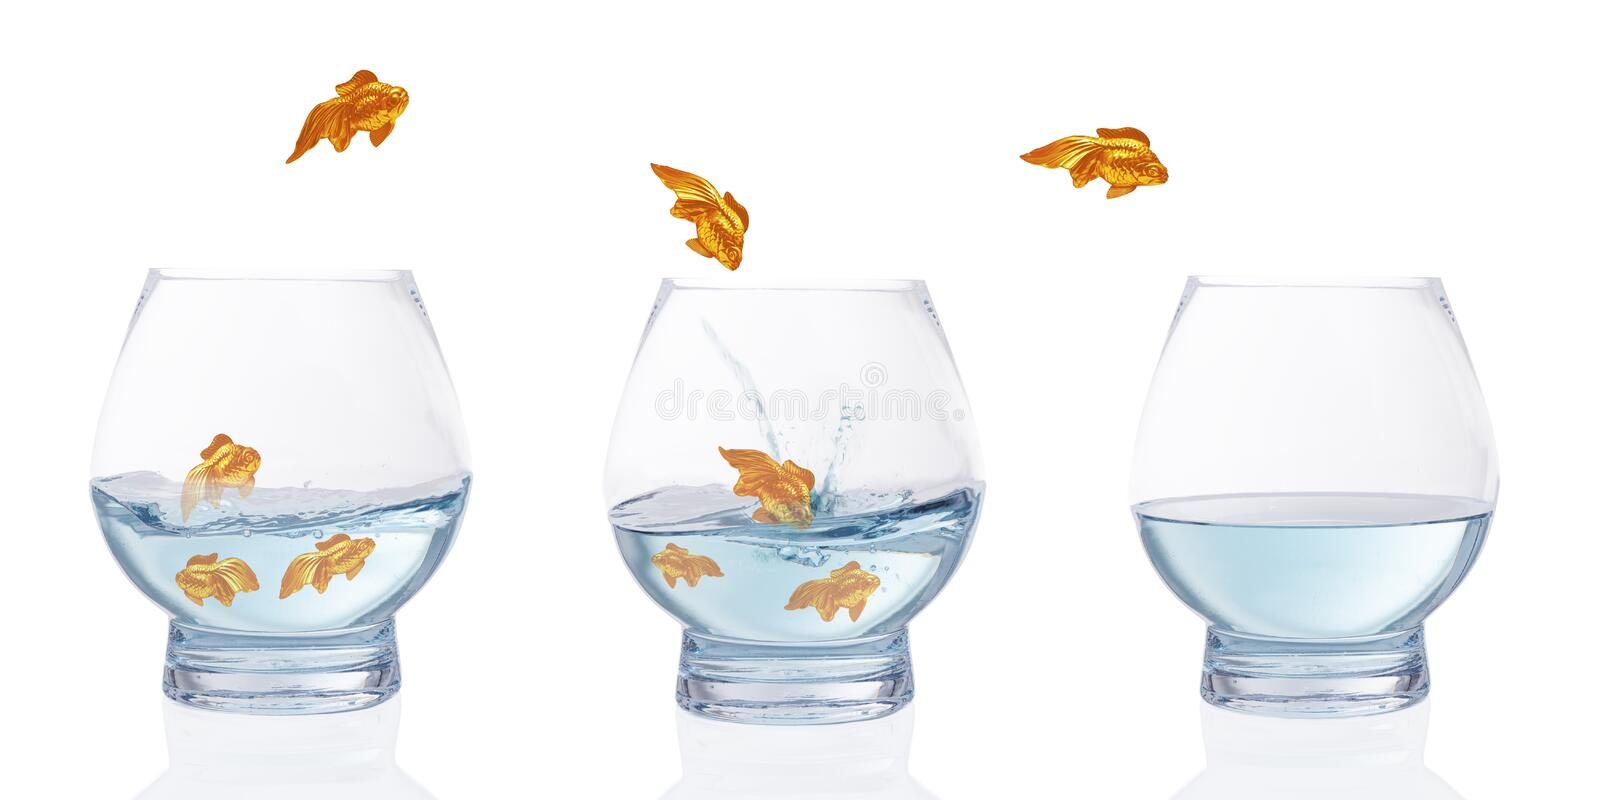 Heading For Calmer Waters. Stylised goldfish leaping from choppy water to calm water stock photo